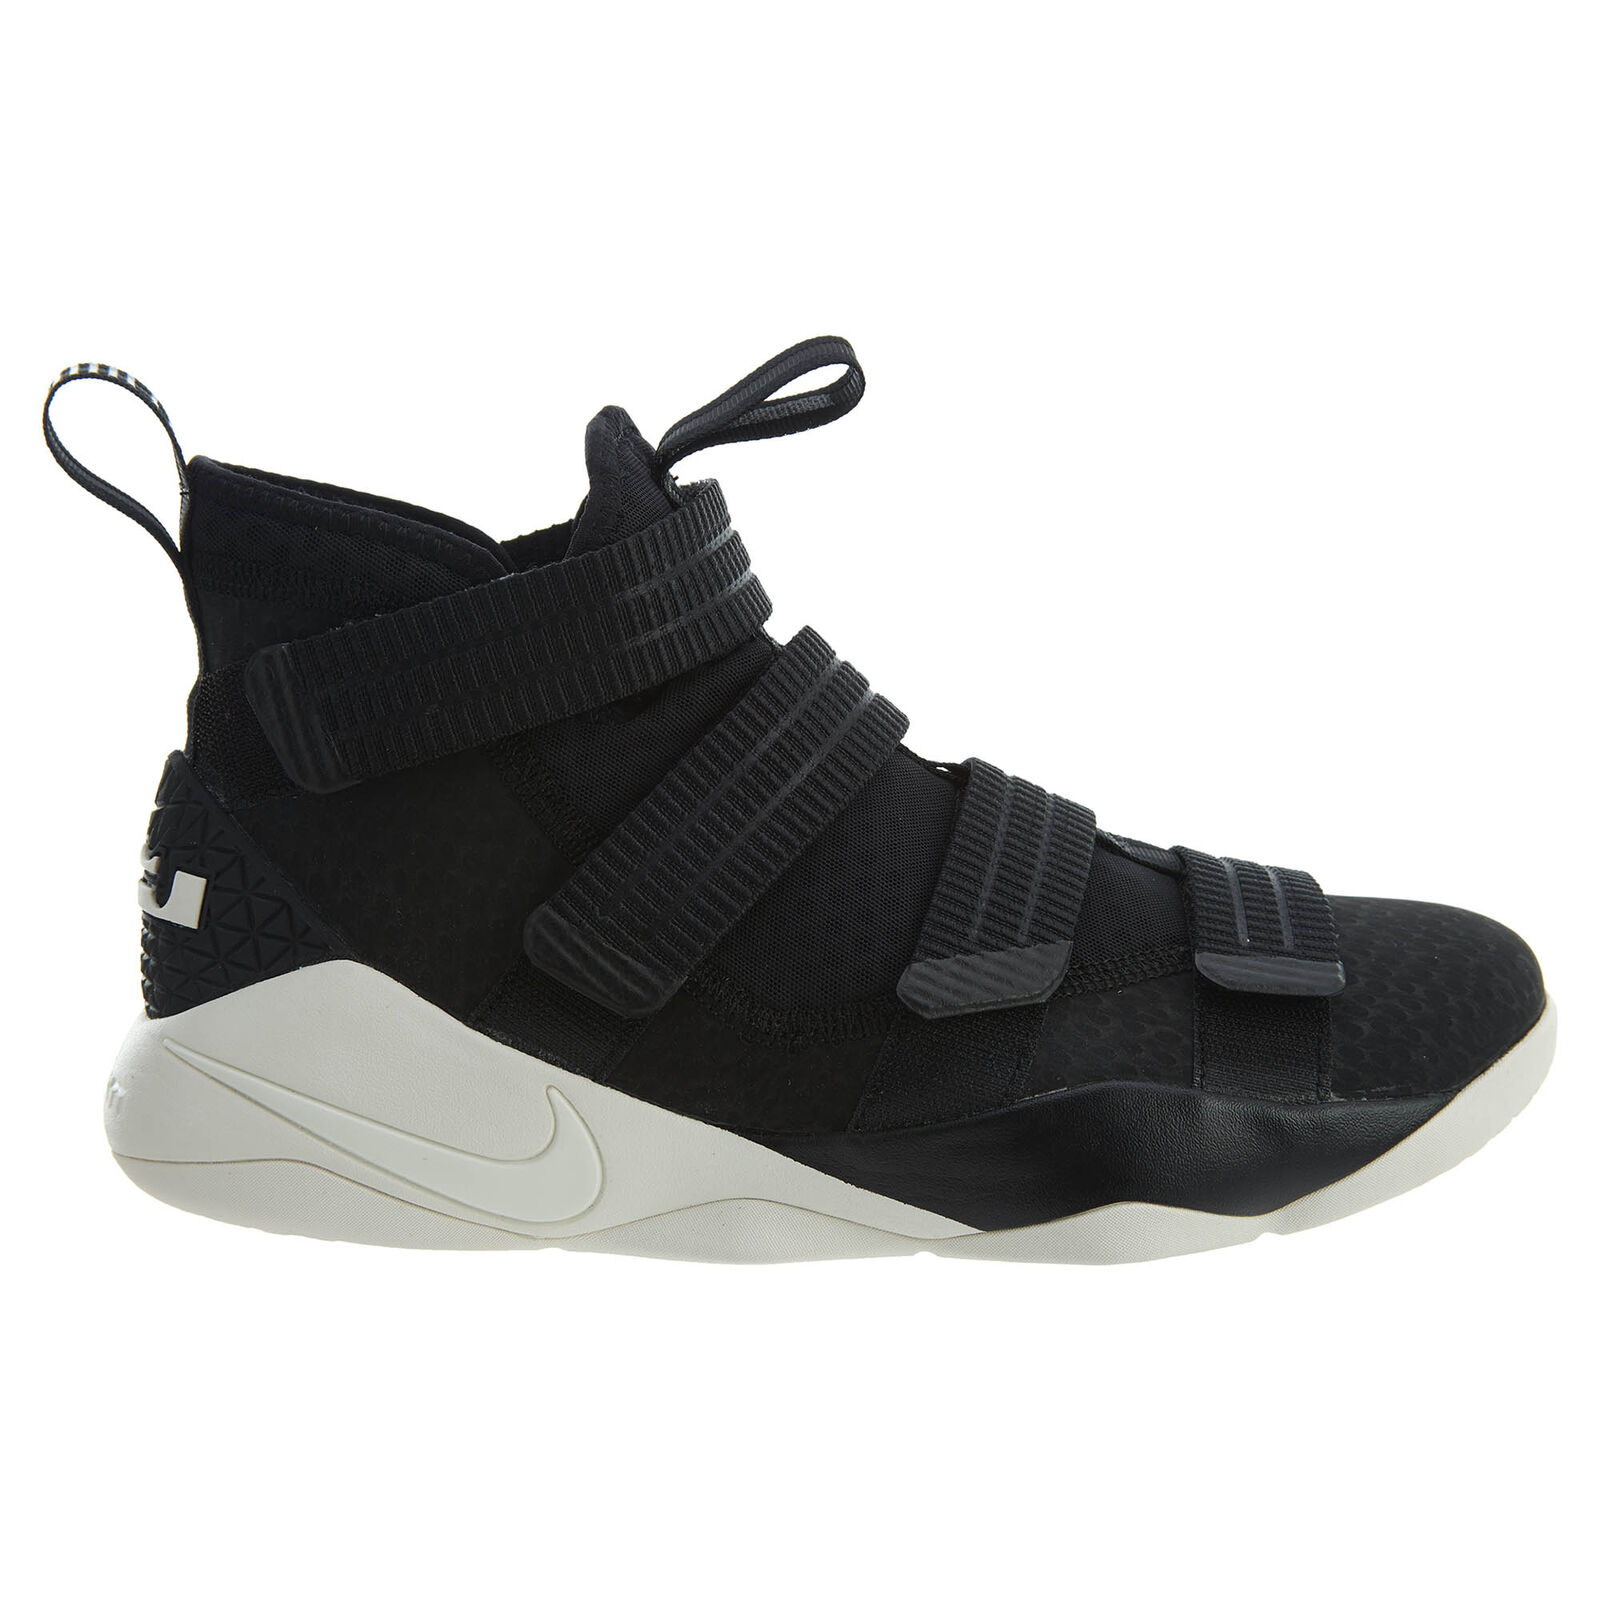 Nike Lebron Basketball Soldier XI SFG Mens 897646-004 Black Sail Basketball Lebron Shoes Size 10.5 80fc02